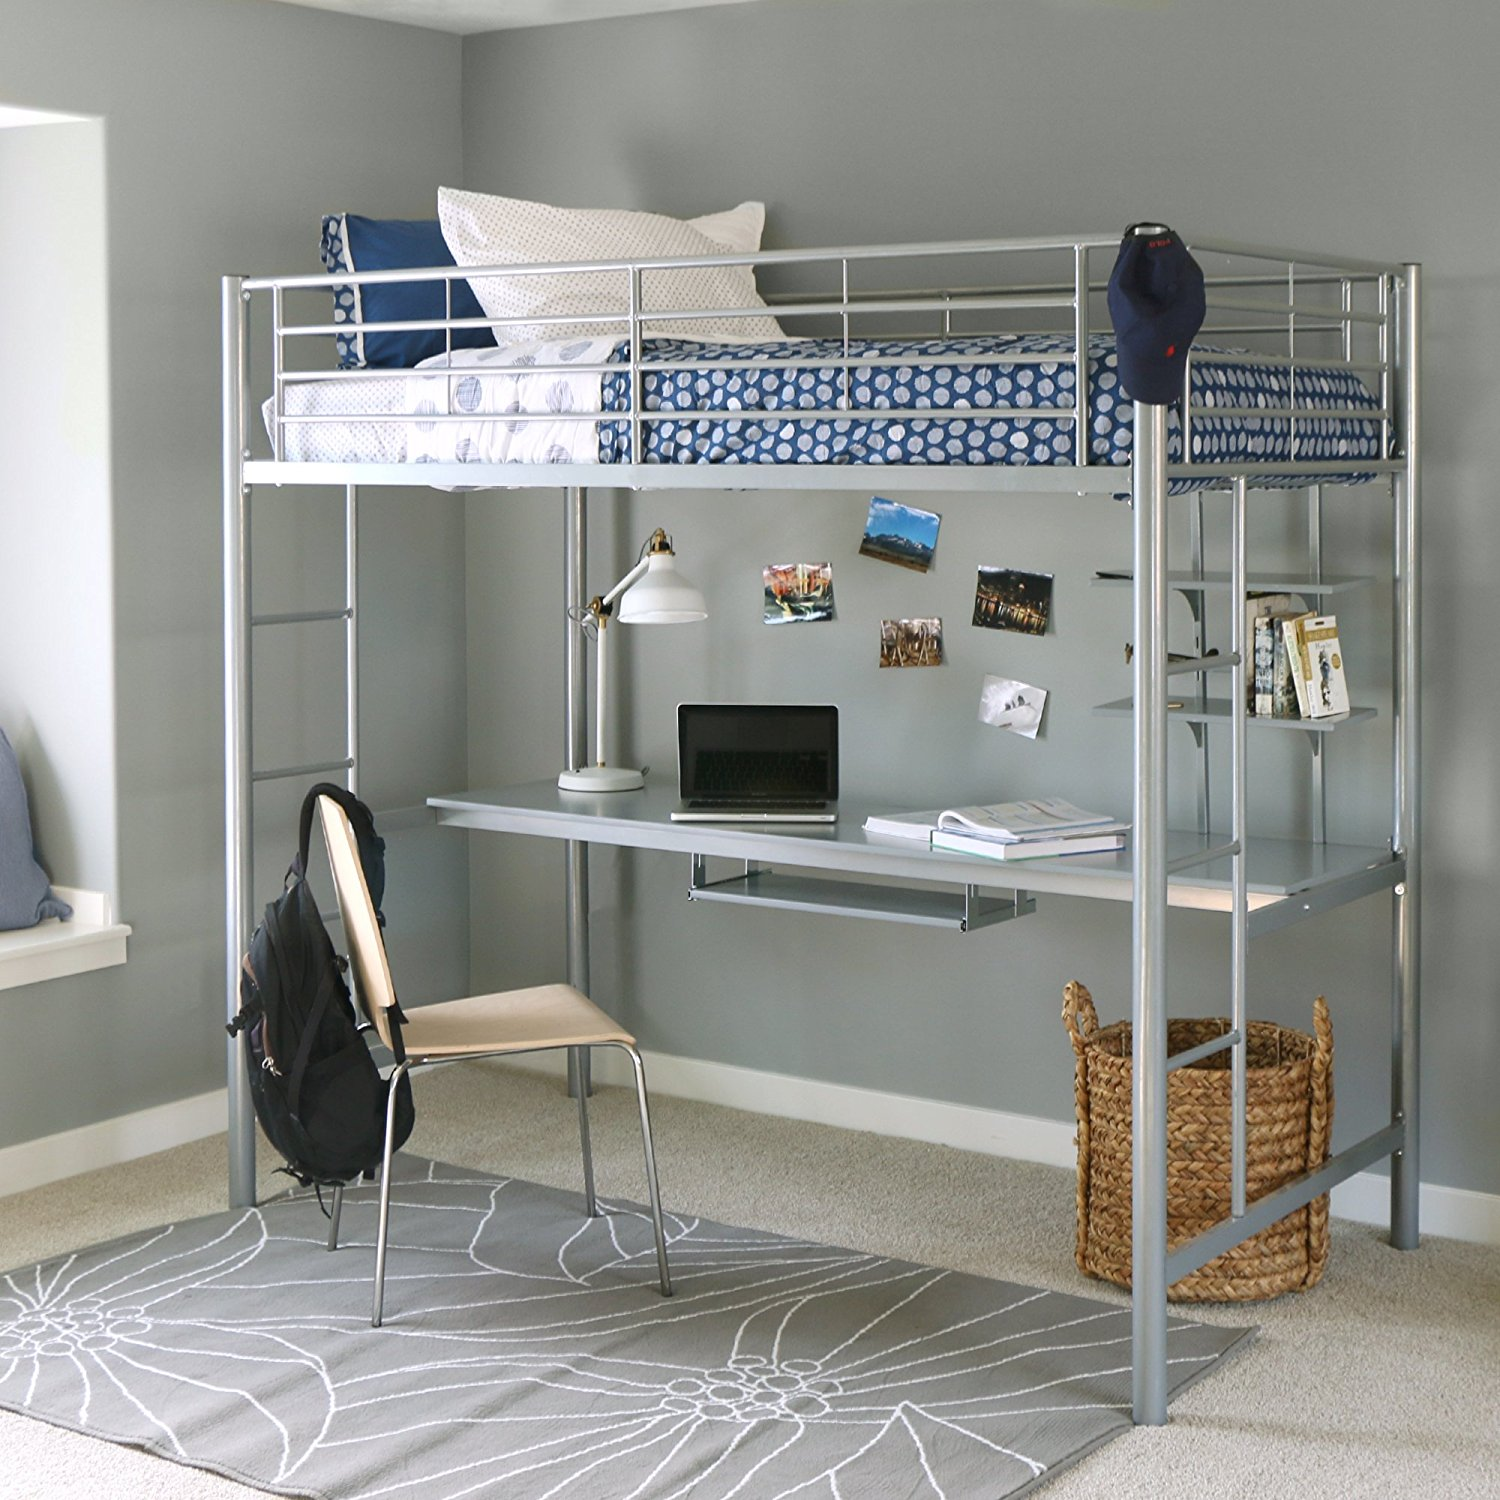 3 Twin Beds In The Space Of 1 Walker Edison Twin Metal Loft Bed With Workstation In